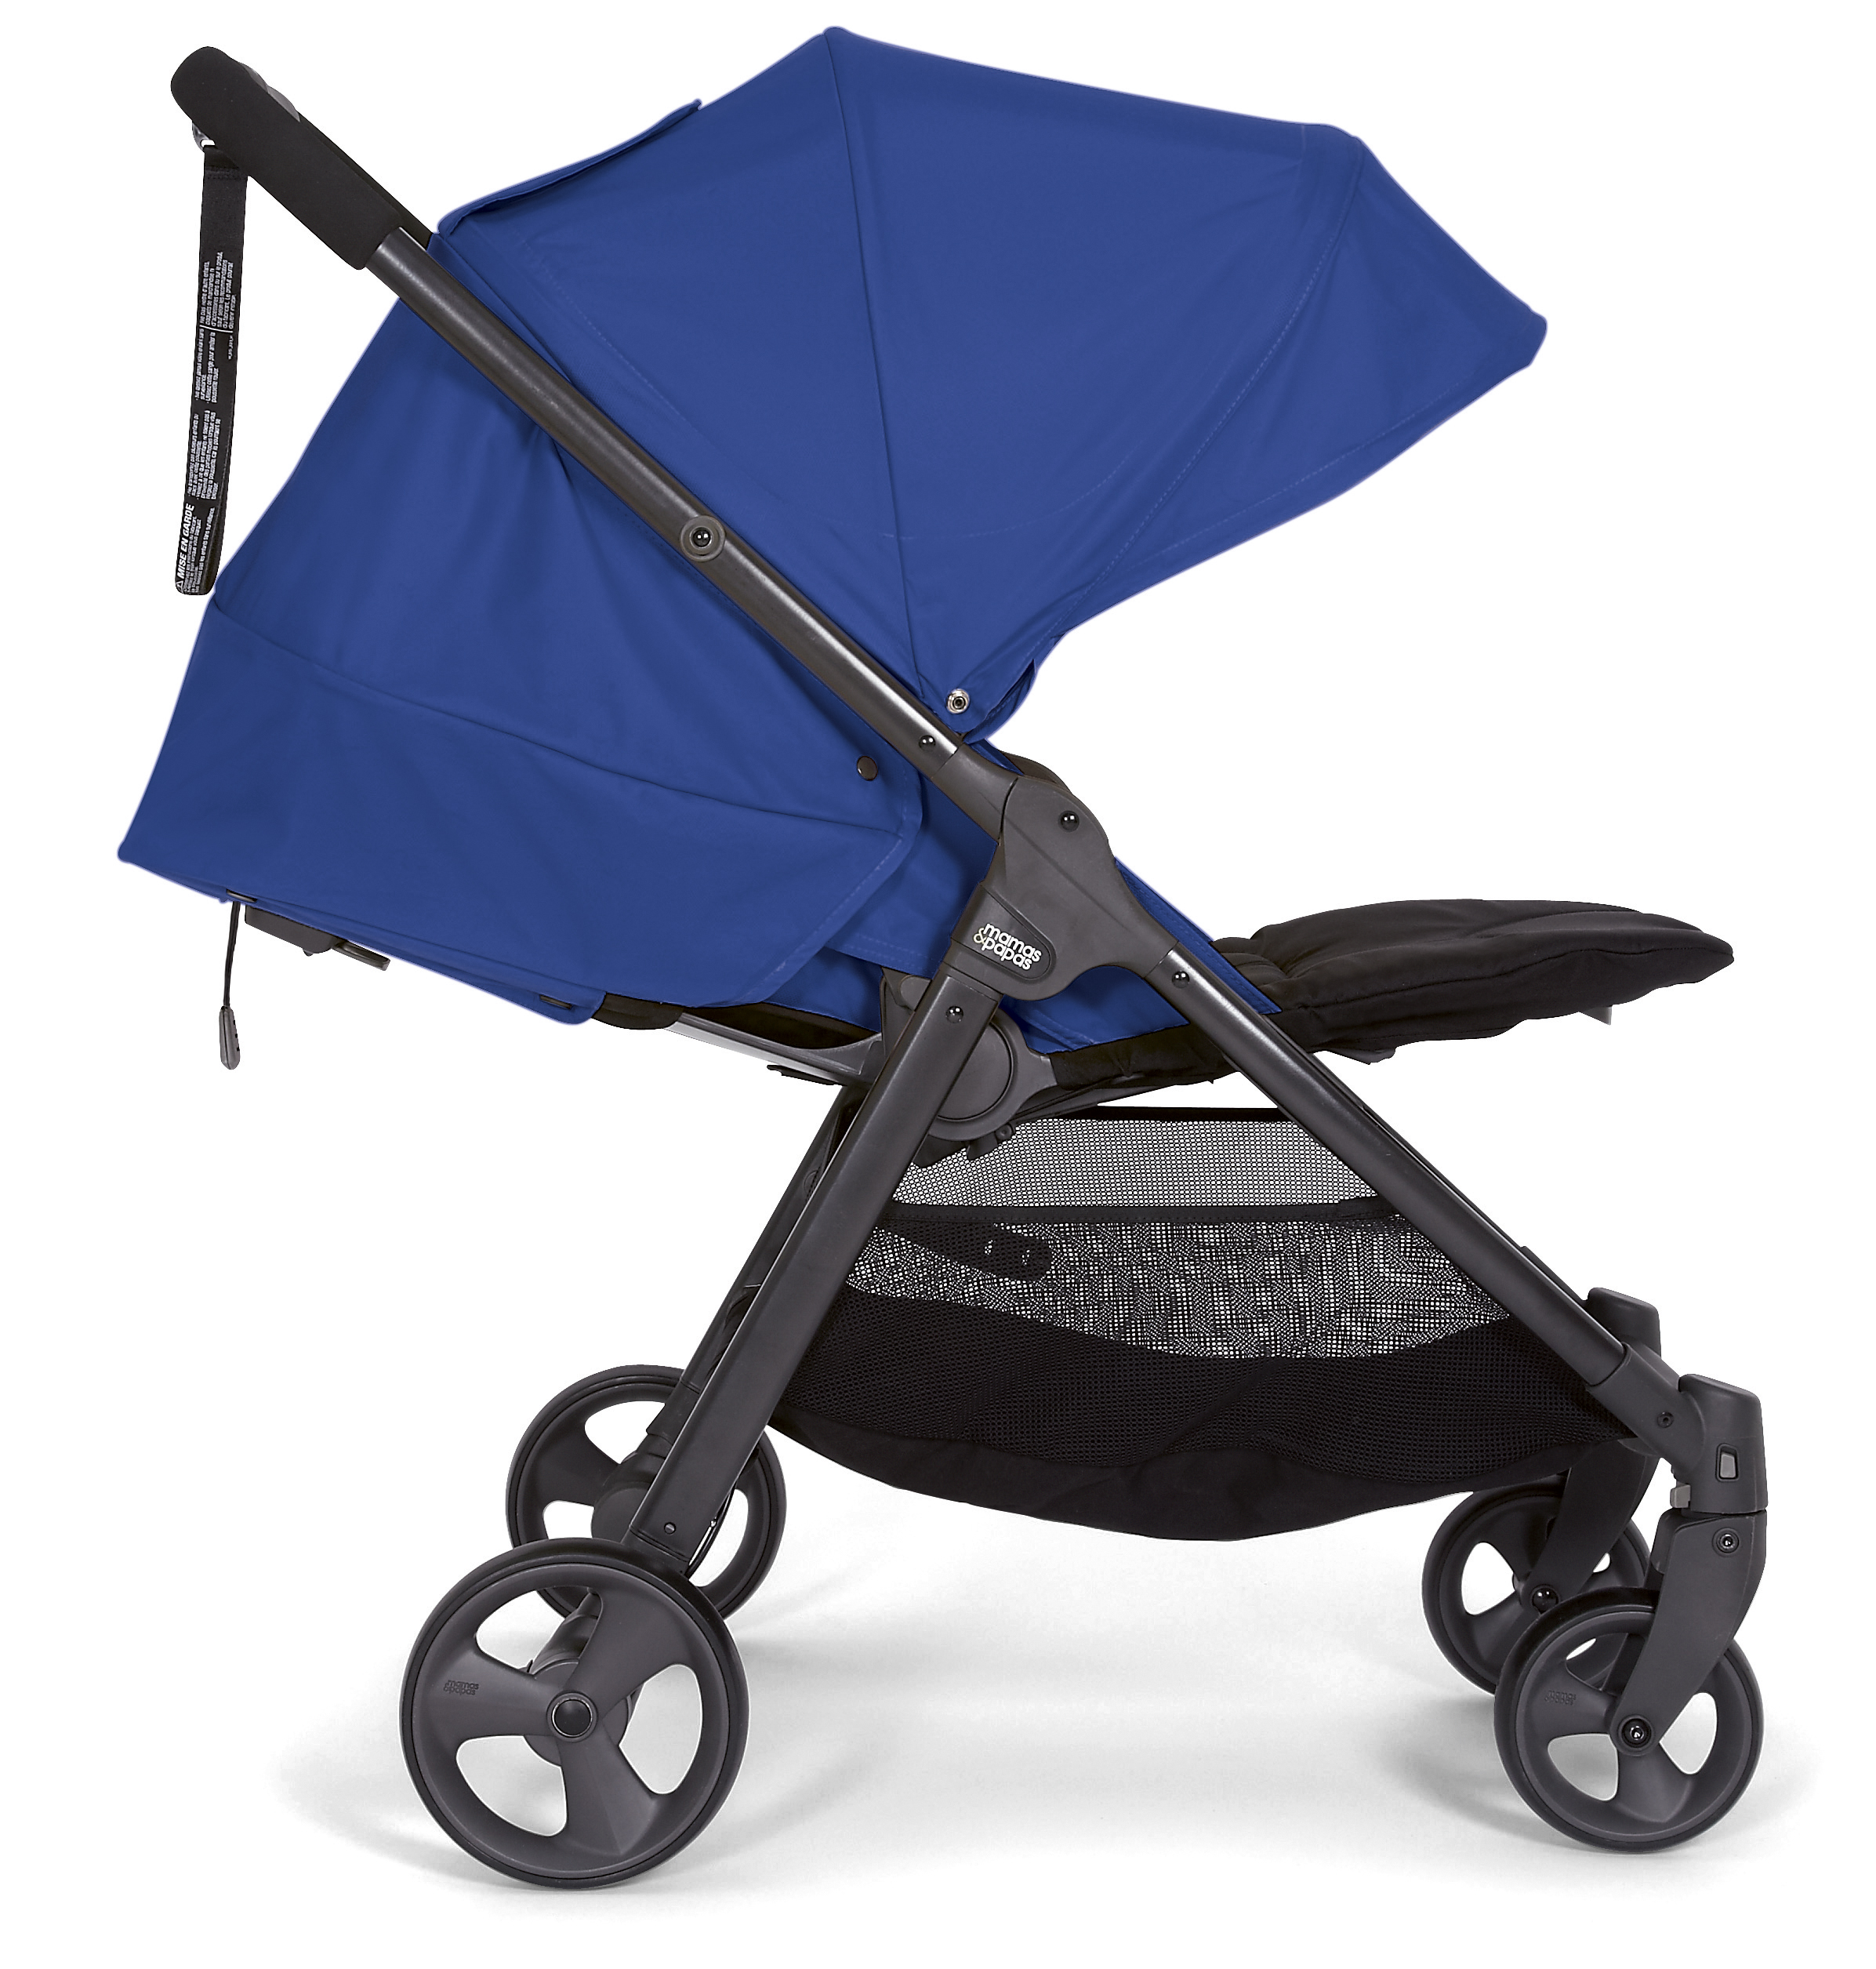 sc 1 st  Pregnancy u0026 Baby & Review: Mamas and Papas Armadillo stroller islam-shia.org